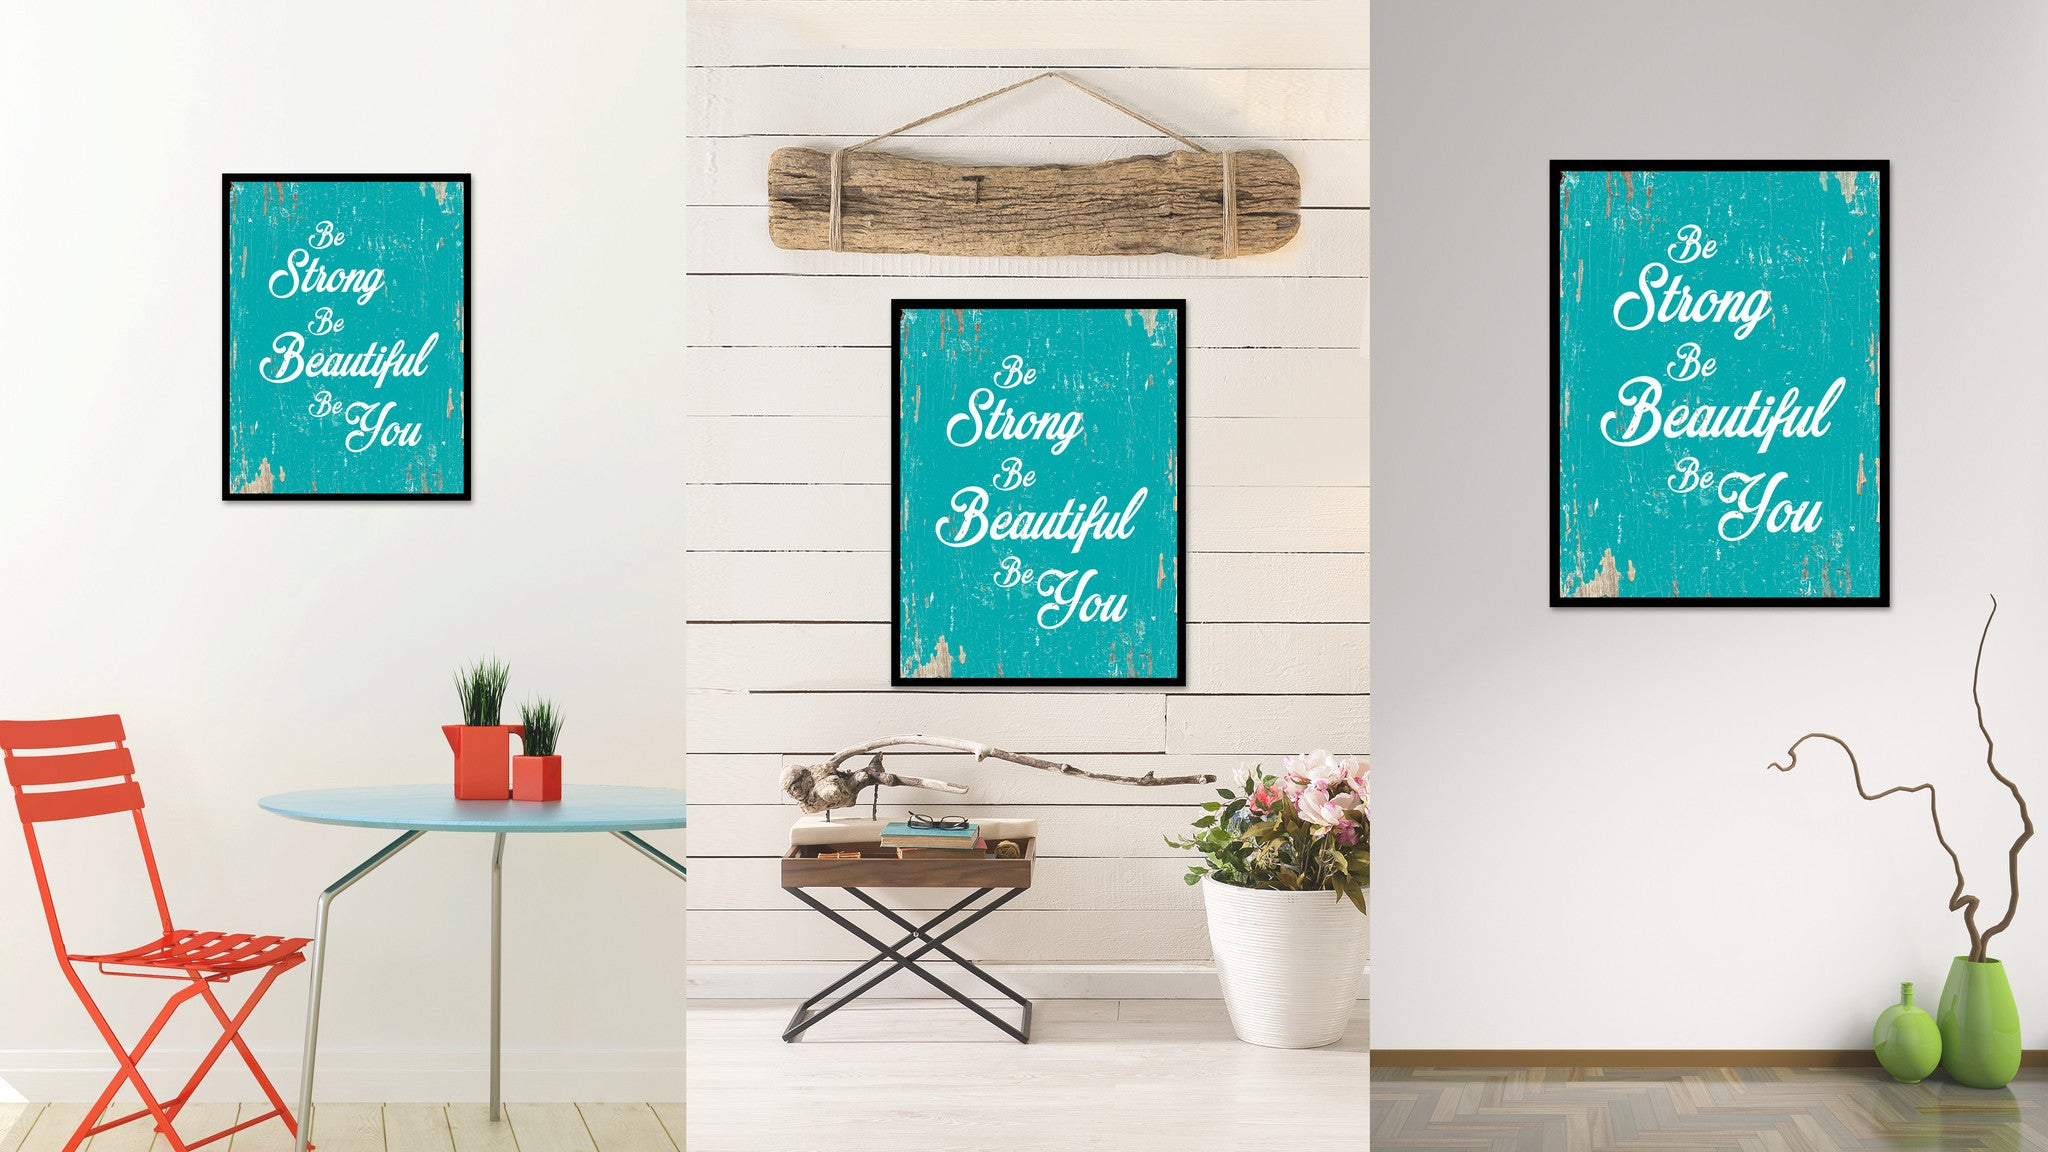 Be Strong Be Beautiful Be You Quote Saying Home Decor Wall Art Gift Ideas 111691